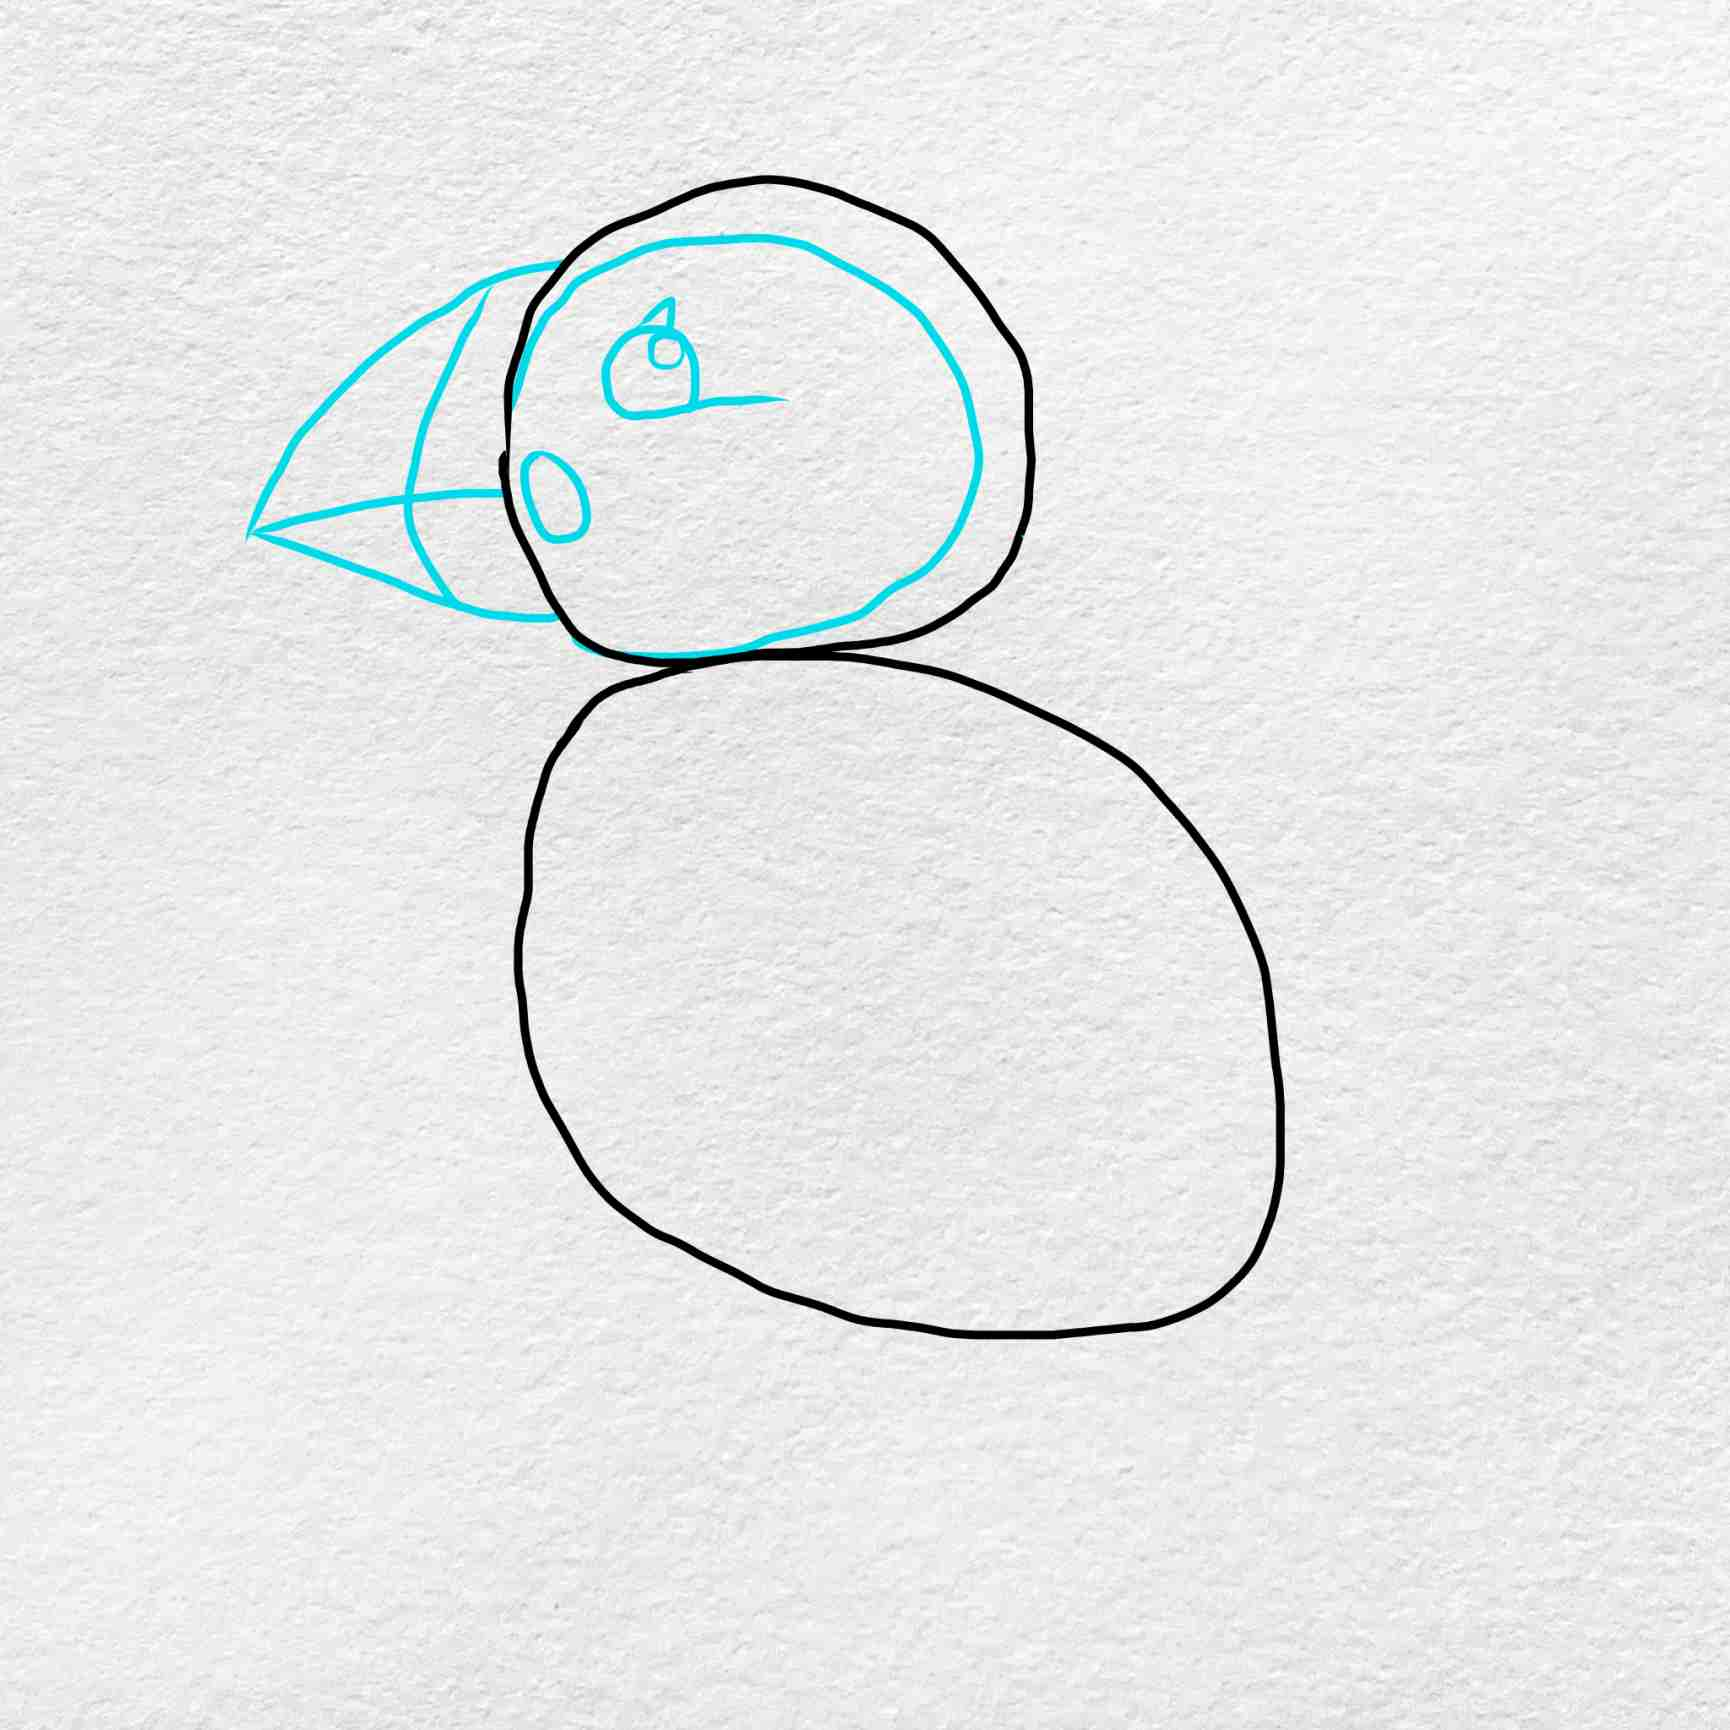 How To Draw Puffin: Step 3